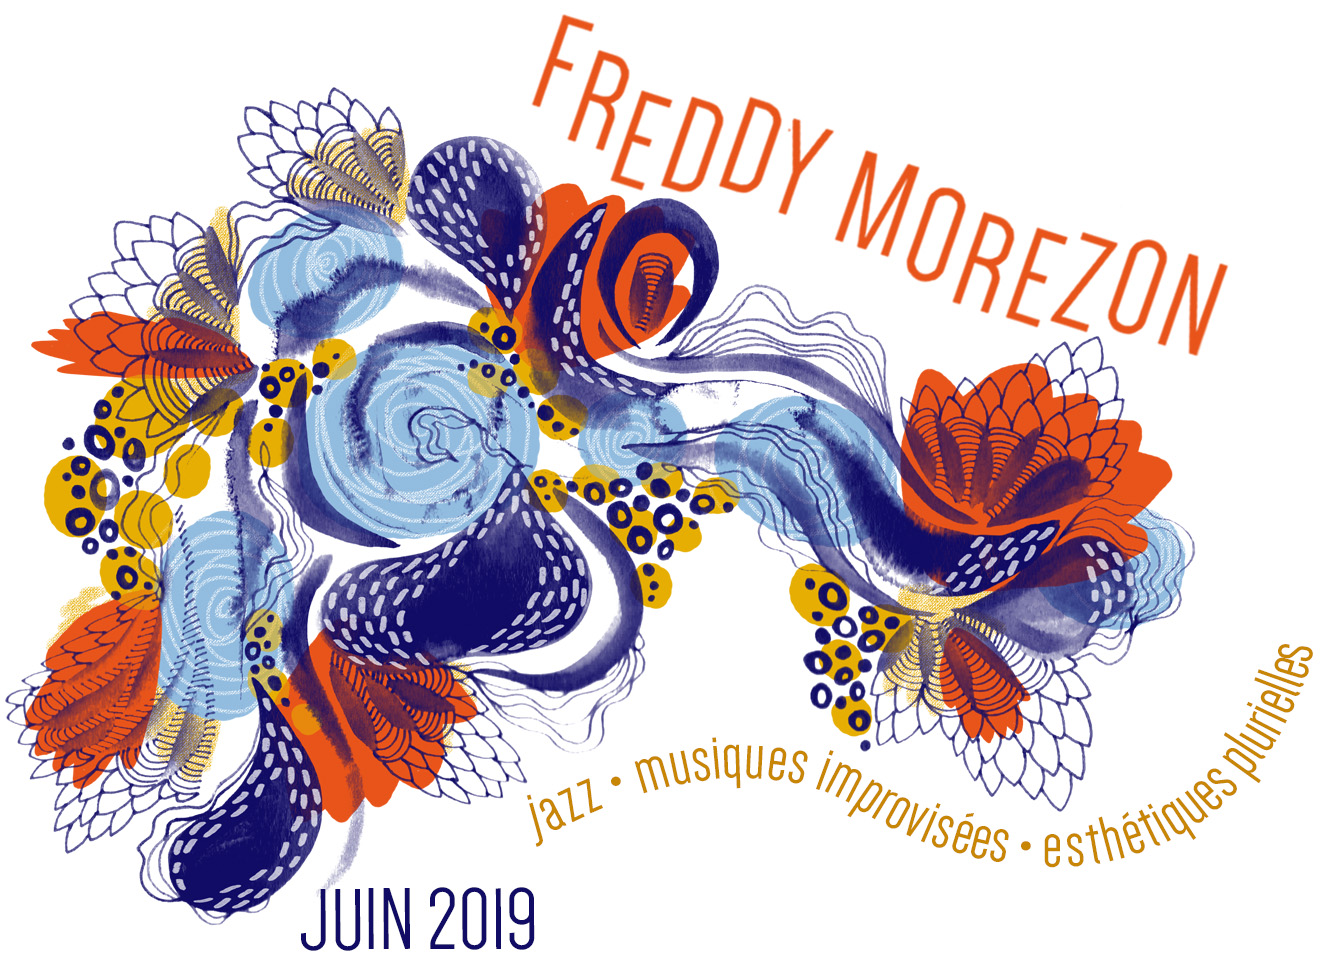 Freddy Morezon - Newsletter juin 2019